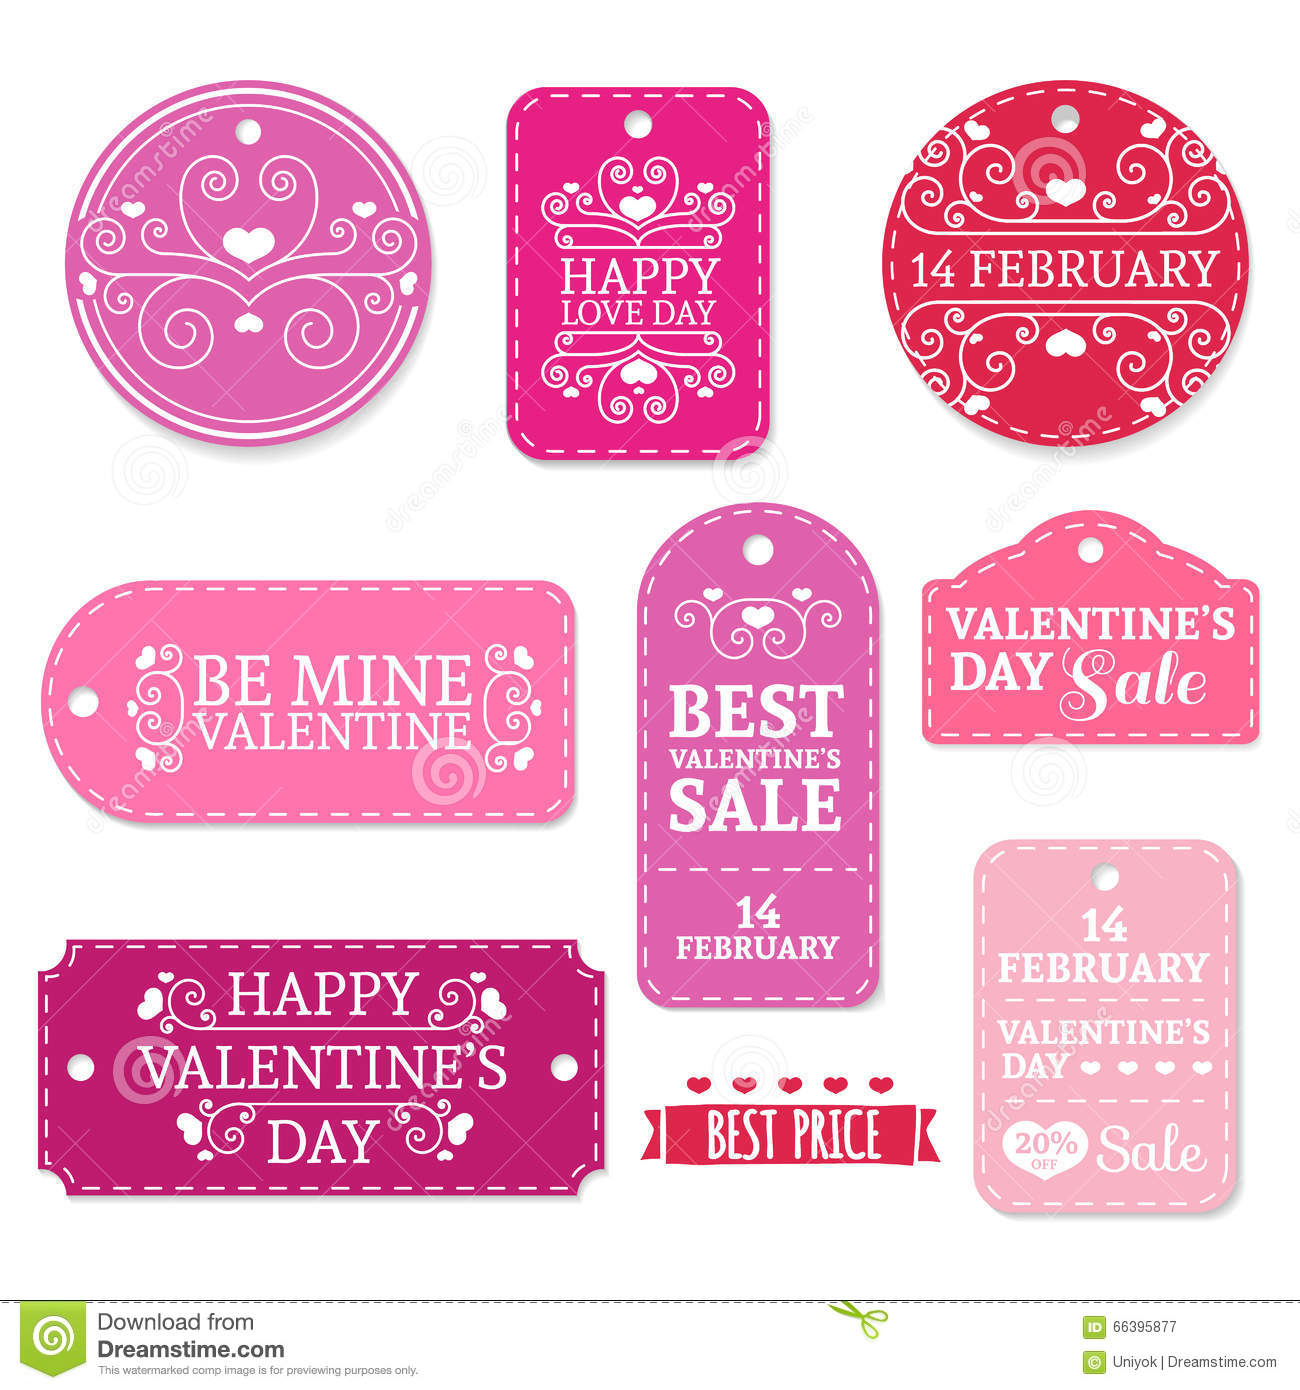 f8bc1dd1b5 Set of pink Valentine's Day stickers, labels, labels, coupons.Valentine's  Day discounts, promotions, offers. Vector. Place for your text